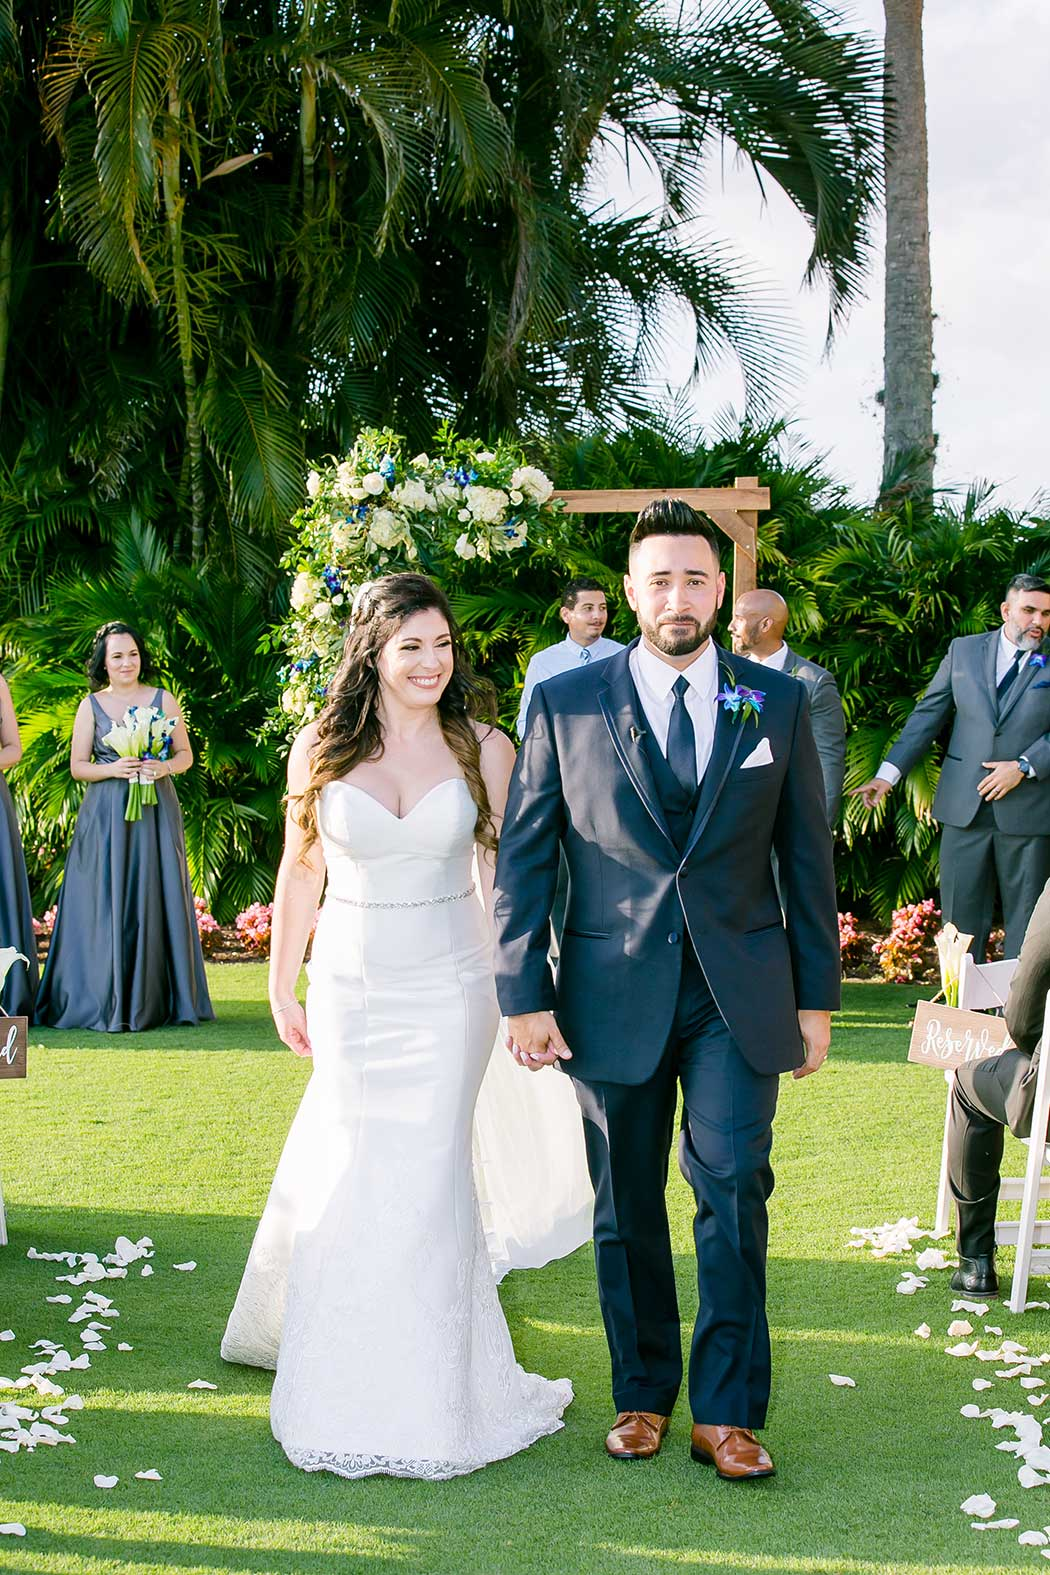 modern wedding at breakers west country club palm beach | bride and groom walk down aisle